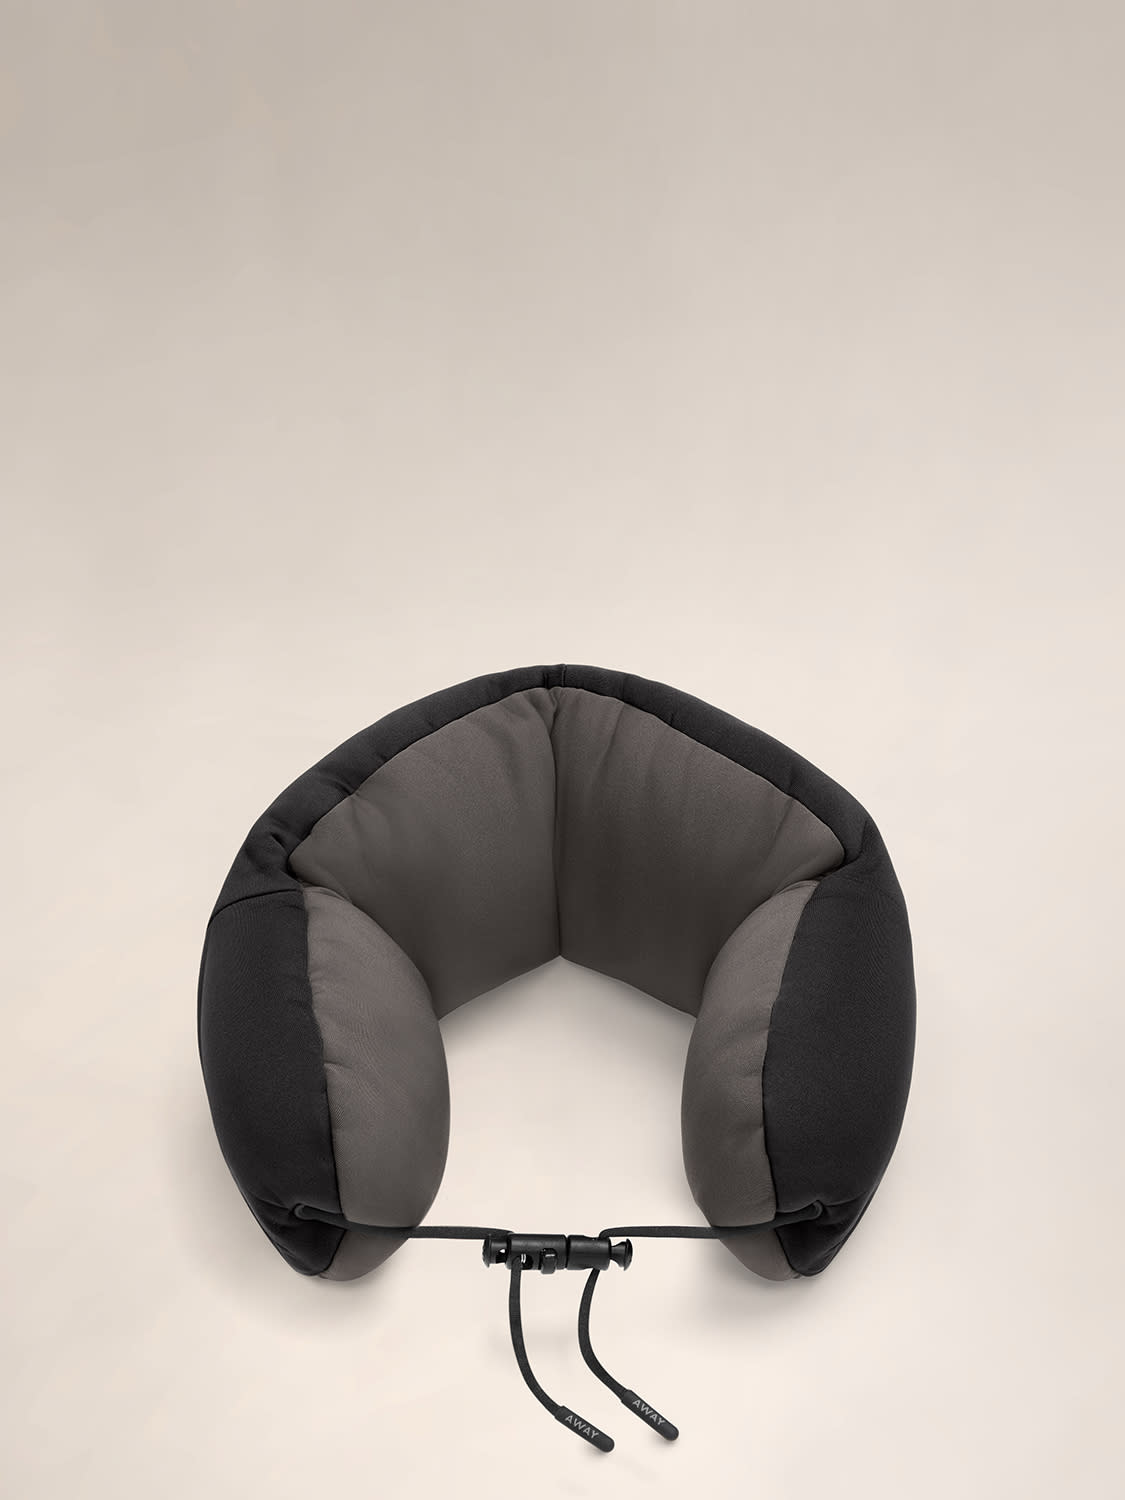 Aerial angled view of a black and grey travel neck pillow with a string loop on one side.